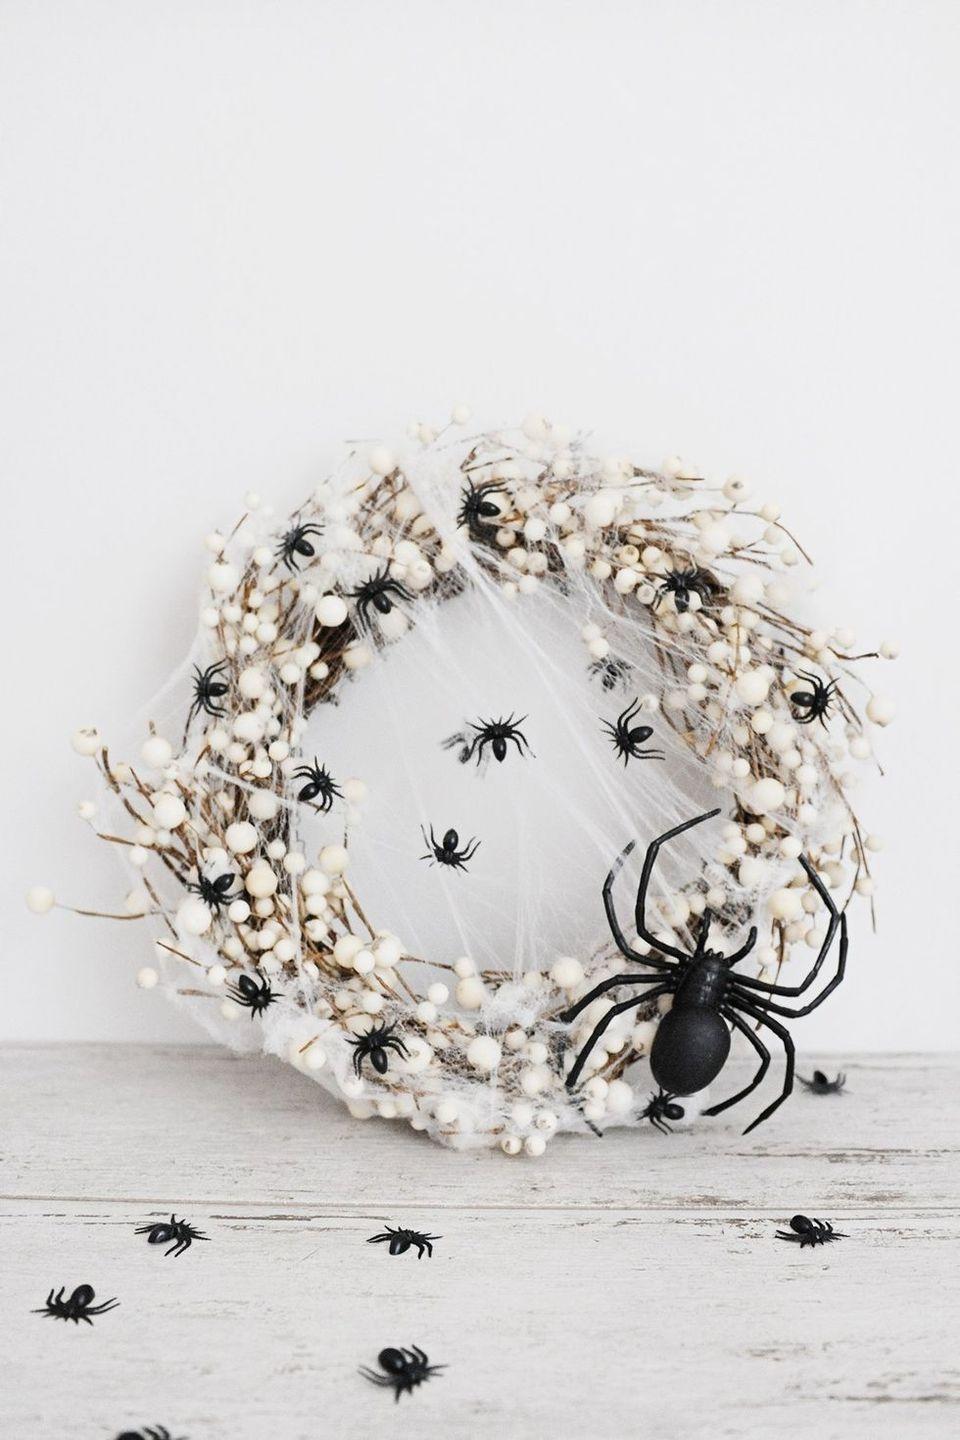 """<p>Equal parts creepy-crawly and sophisticated, this fall wreath is such a fun addition to any porch. It's also incredibly easy to pull together. </p><p><strong>Get the tutorial at <a href=""""https://pinkpeppermintdesign.com/easy-diy-spider-wreath-for-halloween"""" rel=""""nofollow noopener"""" target=""""_blank"""" data-ylk=""""slk:Pink Peppermint Design"""" class=""""link rapid-noclick-resp"""">Pink Peppermint Design</a>.</strong></p><p><strong><a class=""""link rapid-noclick-resp"""" href=""""https://go.redirectingat.com?id=74968X1596630&url=https%3A%2F%2Fwww.walmart.com%2Fip%2FWalfront-50-Pcs-2cm-Halloween-Plastic-Black-Spider-Joking-Toys-Fake-Spider-Decoration-For-Party%2F923296314&sref=https%3A%2F%2Fwww.thepioneerwoman.com%2Fholidays-celebrations%2Fg32894423%2Foutdoor-halloween-decorations%2F"""" rel=""""nofollow noopener"""" target=""""_blank"""" data-ylk=""""slk:SHOP FAUX SPIDERS"""">SHOP FAUX SPIDERS</a><br></strong></p>"""